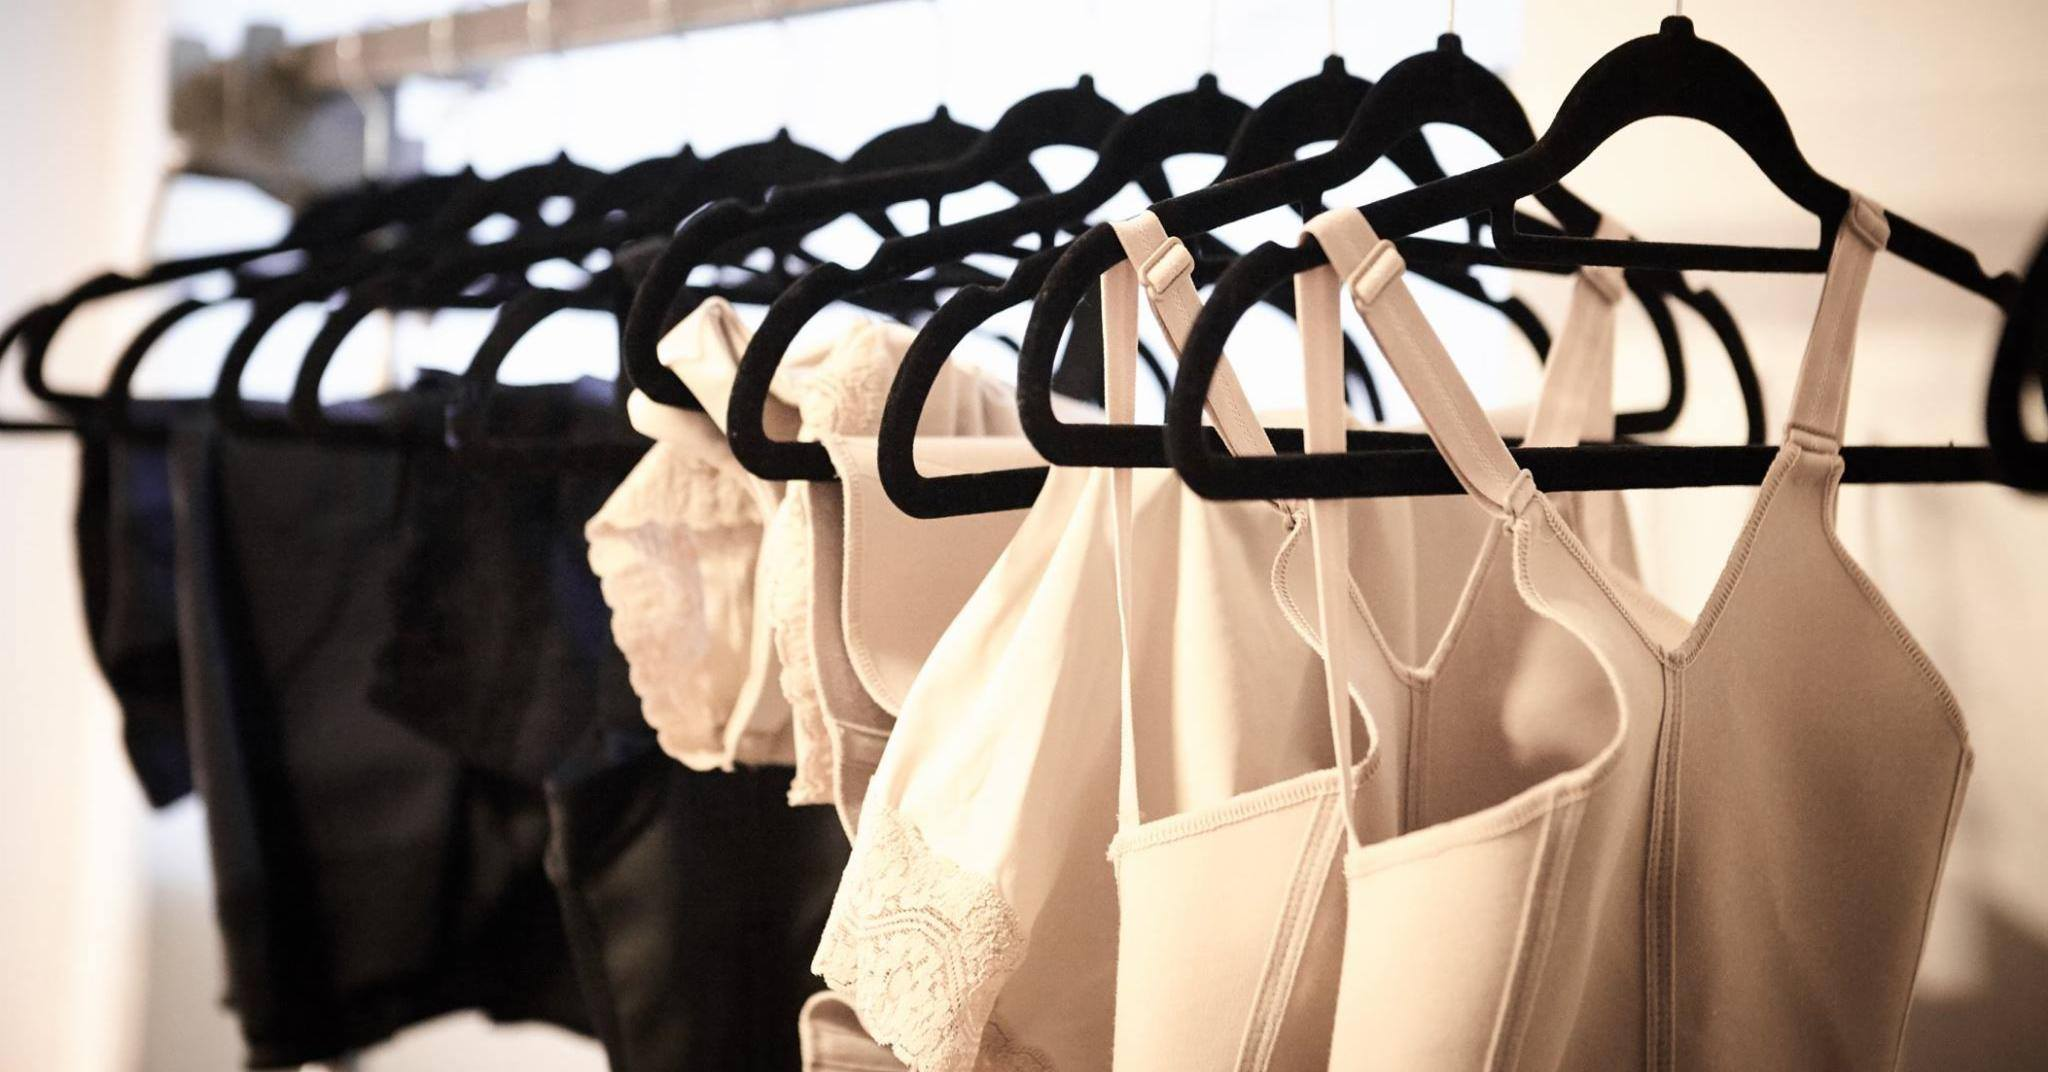 Does Shapewear Make You Look Thinner Ahead Of The Curve